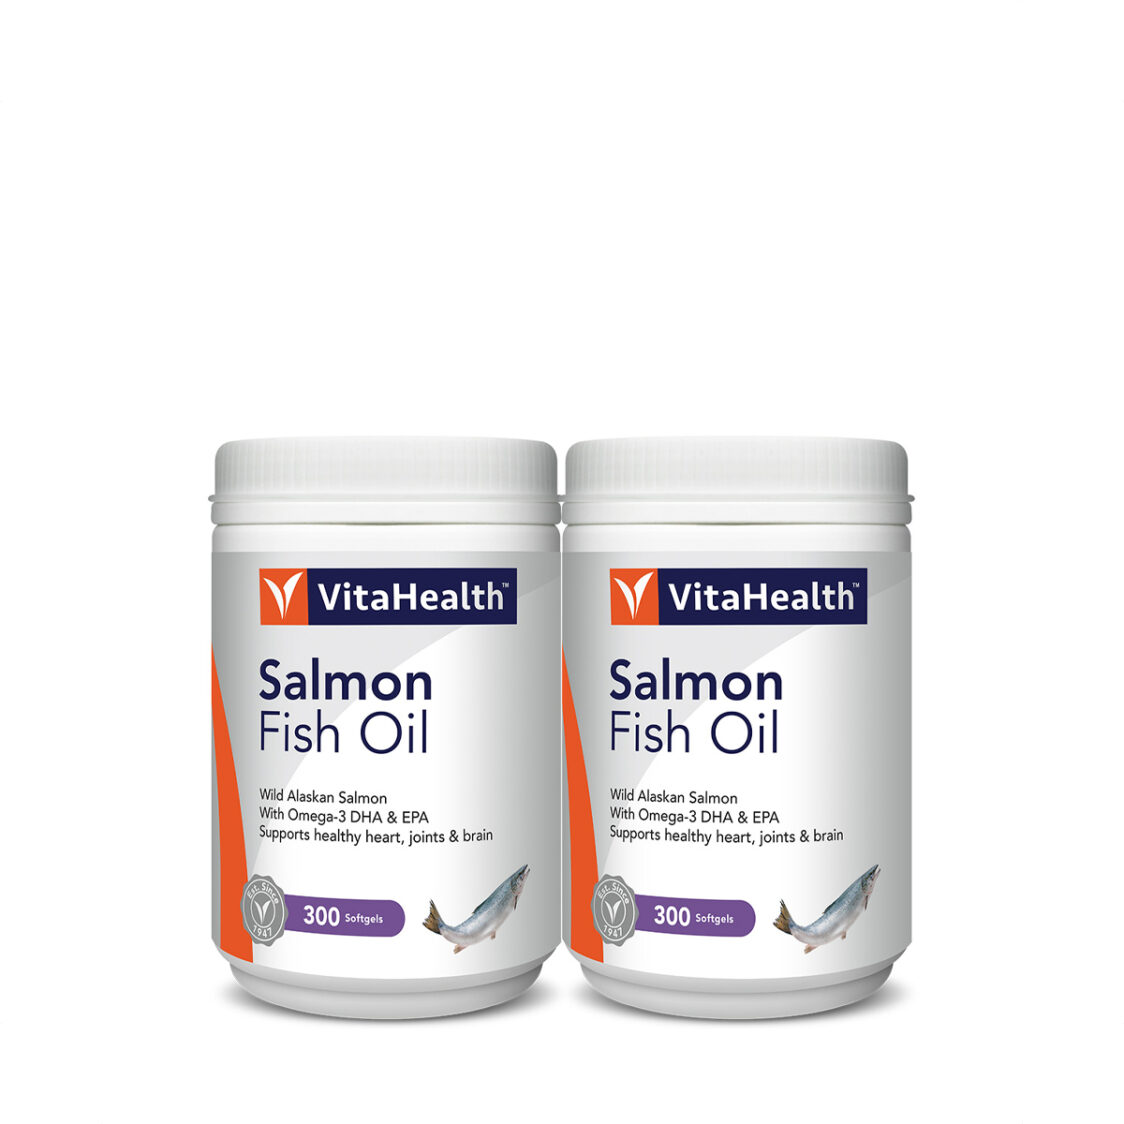 Wild Alaskan Salmon Oil 2x300Softgels